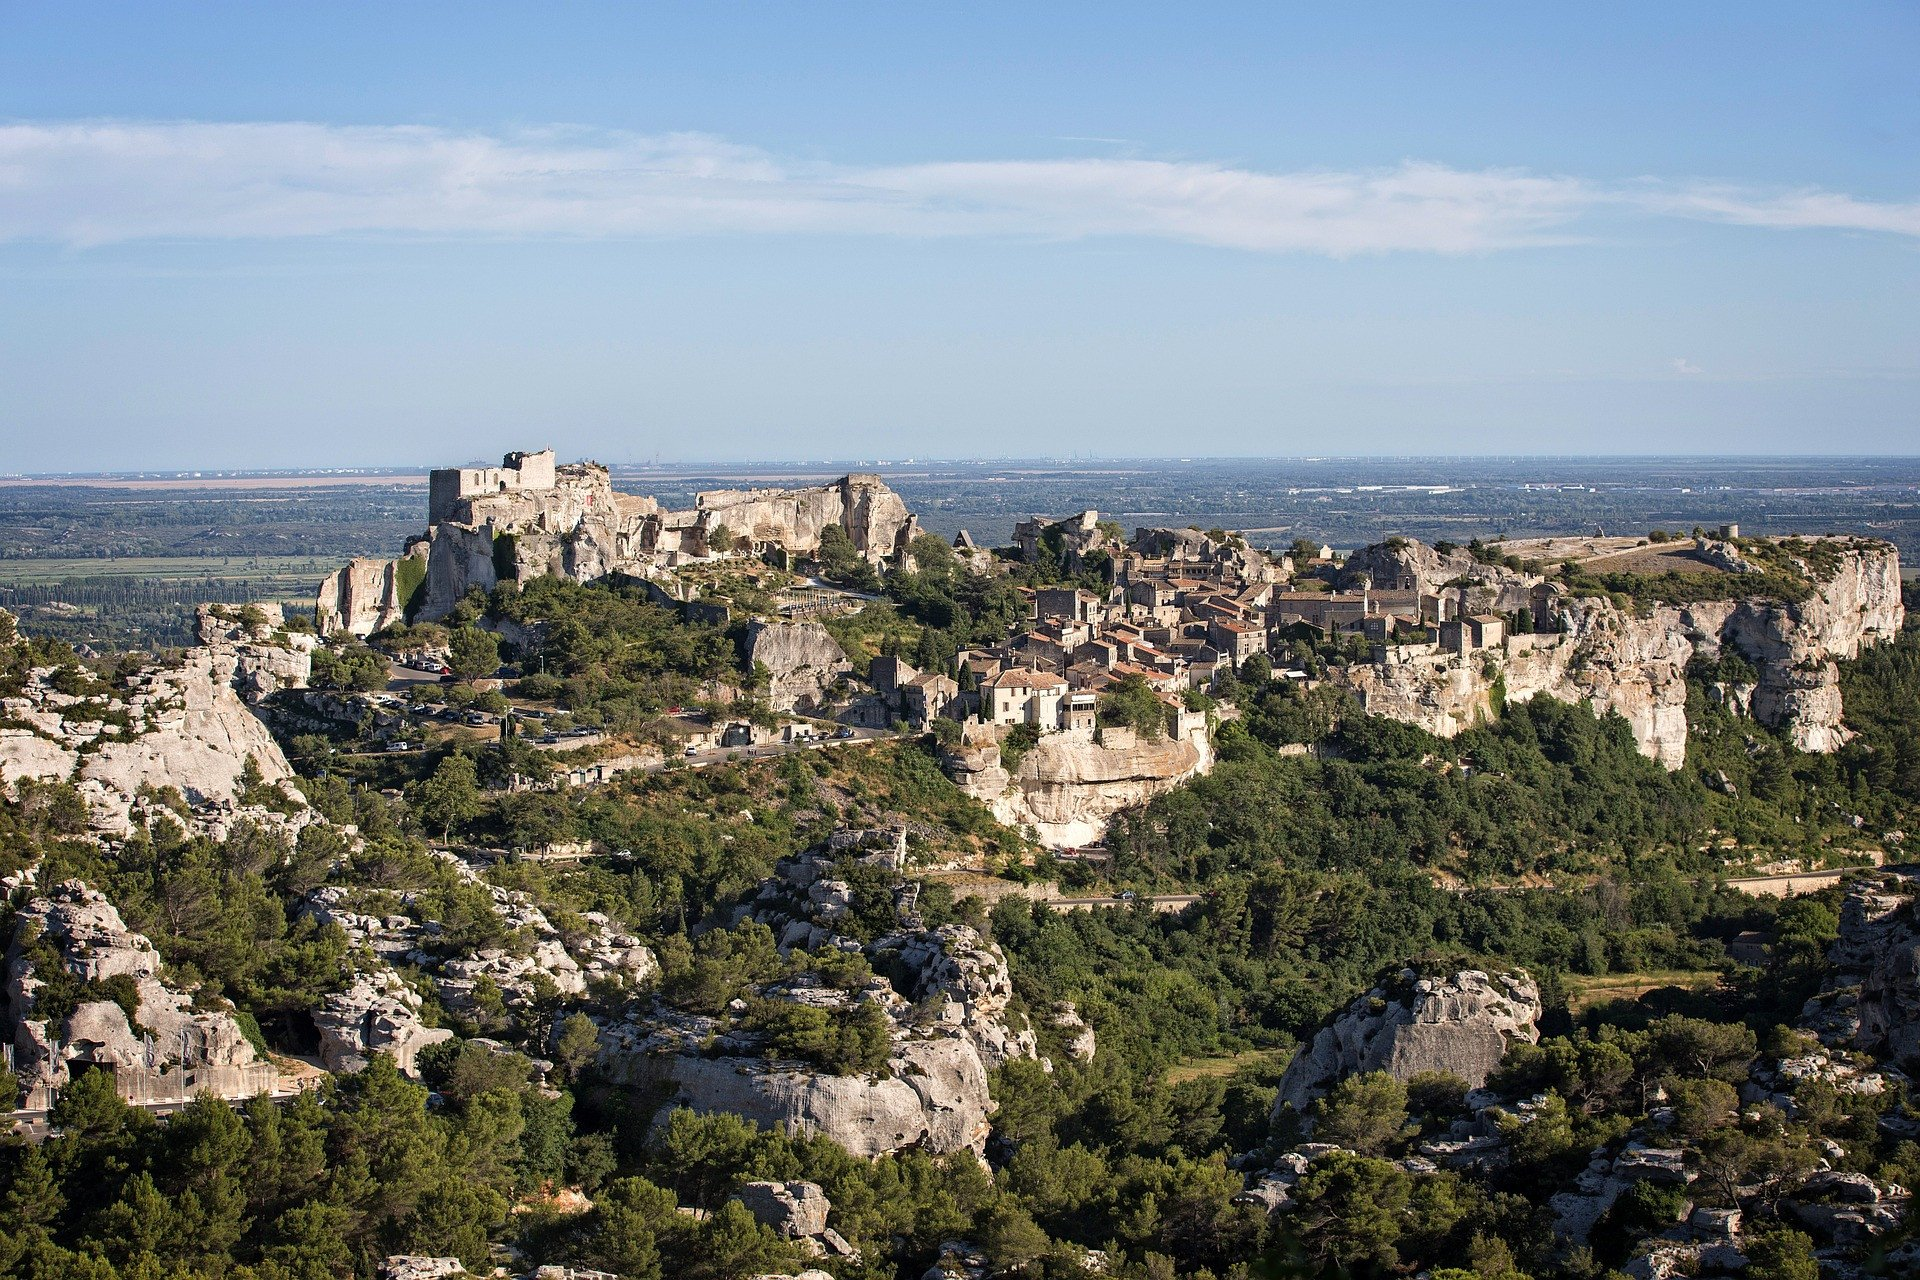 montagnes-village-alpilles-provence-france